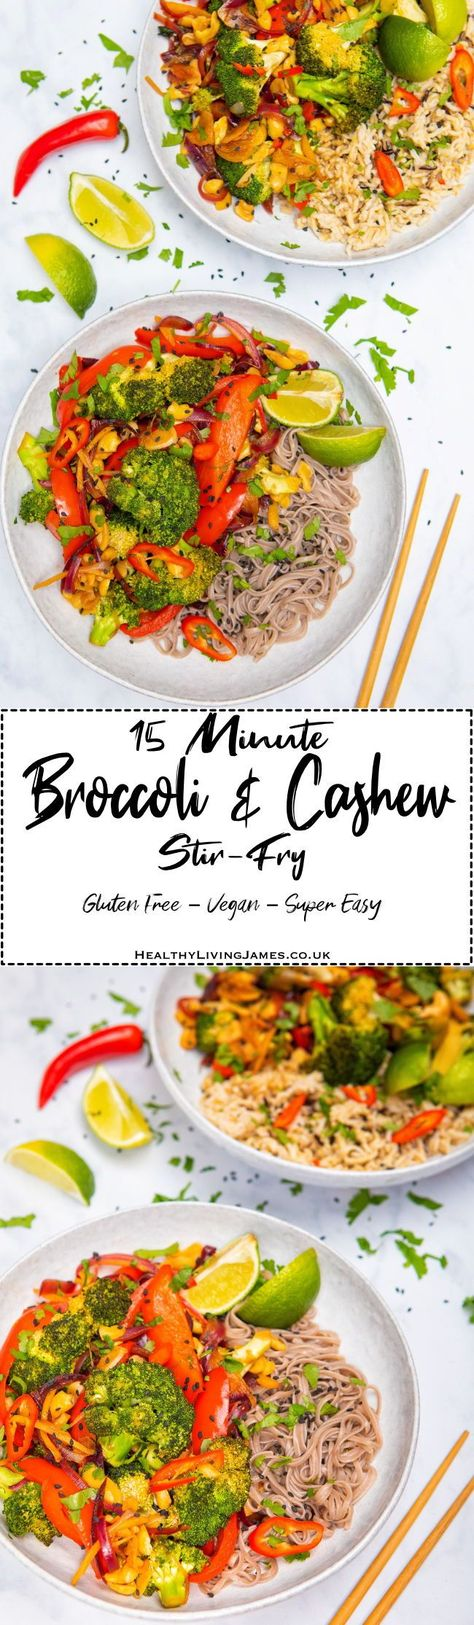 Super easy and tasty 15 minute broccoli & cashew stir-fry that is #glutenfree & #vegan. Perfect quick healthy recipe for those busy evenings, from chopping board to bowl in just 15 mins.